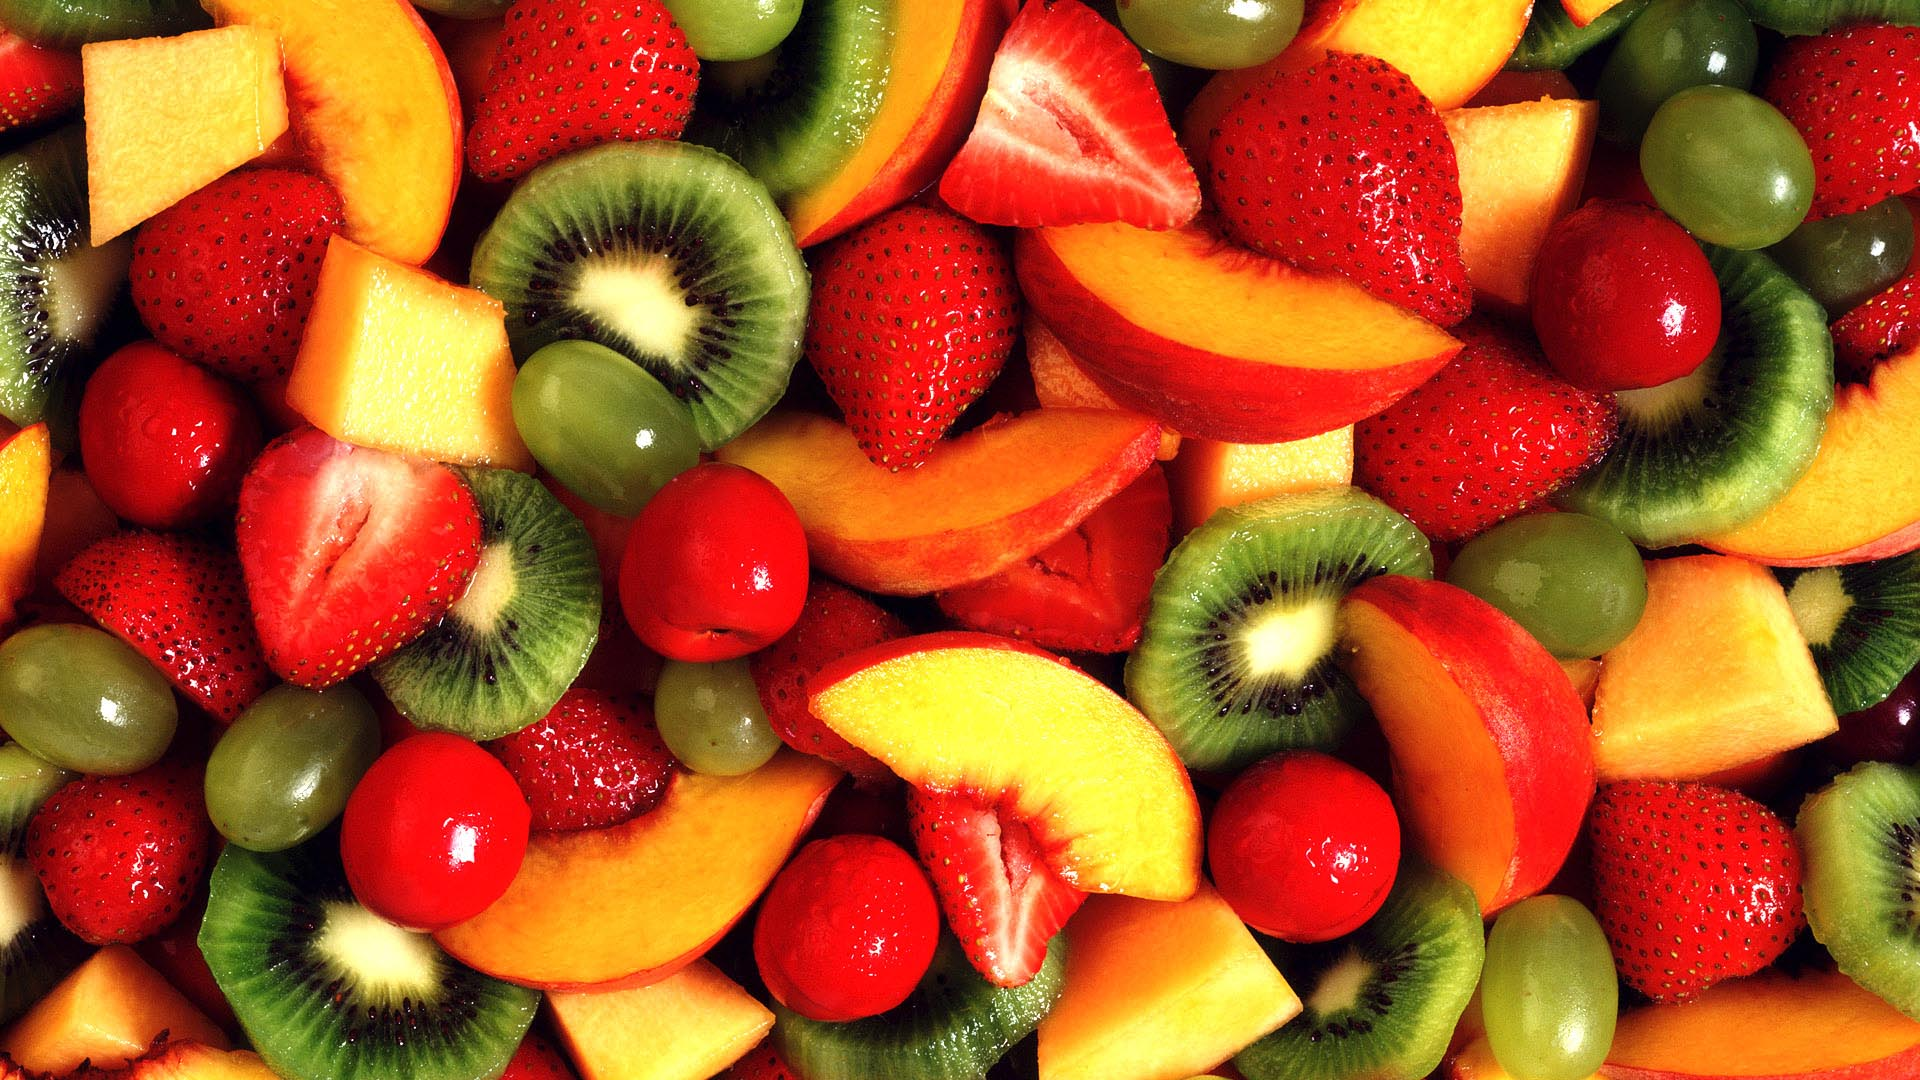 Food fresh Fruit kiwi strawberry   Full HD Desktop Wallpaper 1920x1080